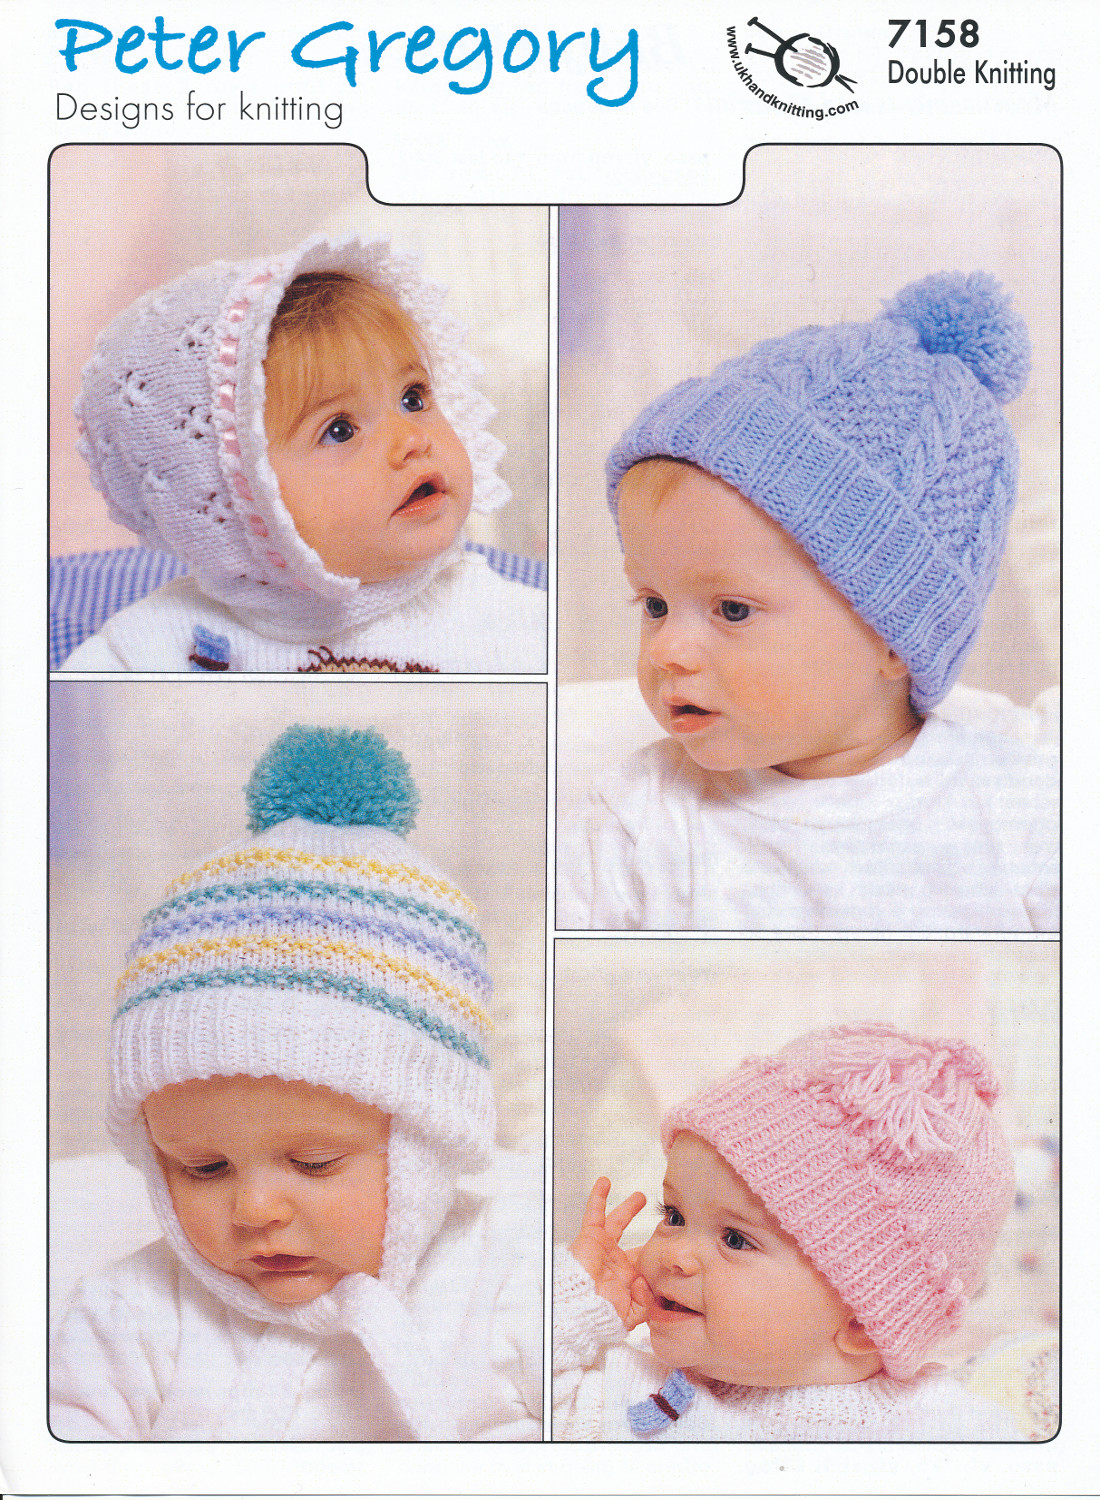 Scarves Knitting Patterns Free : Baby Double Knitting Pattern Baby Accessories Hats Bonnets Peter Gregory DK 7...